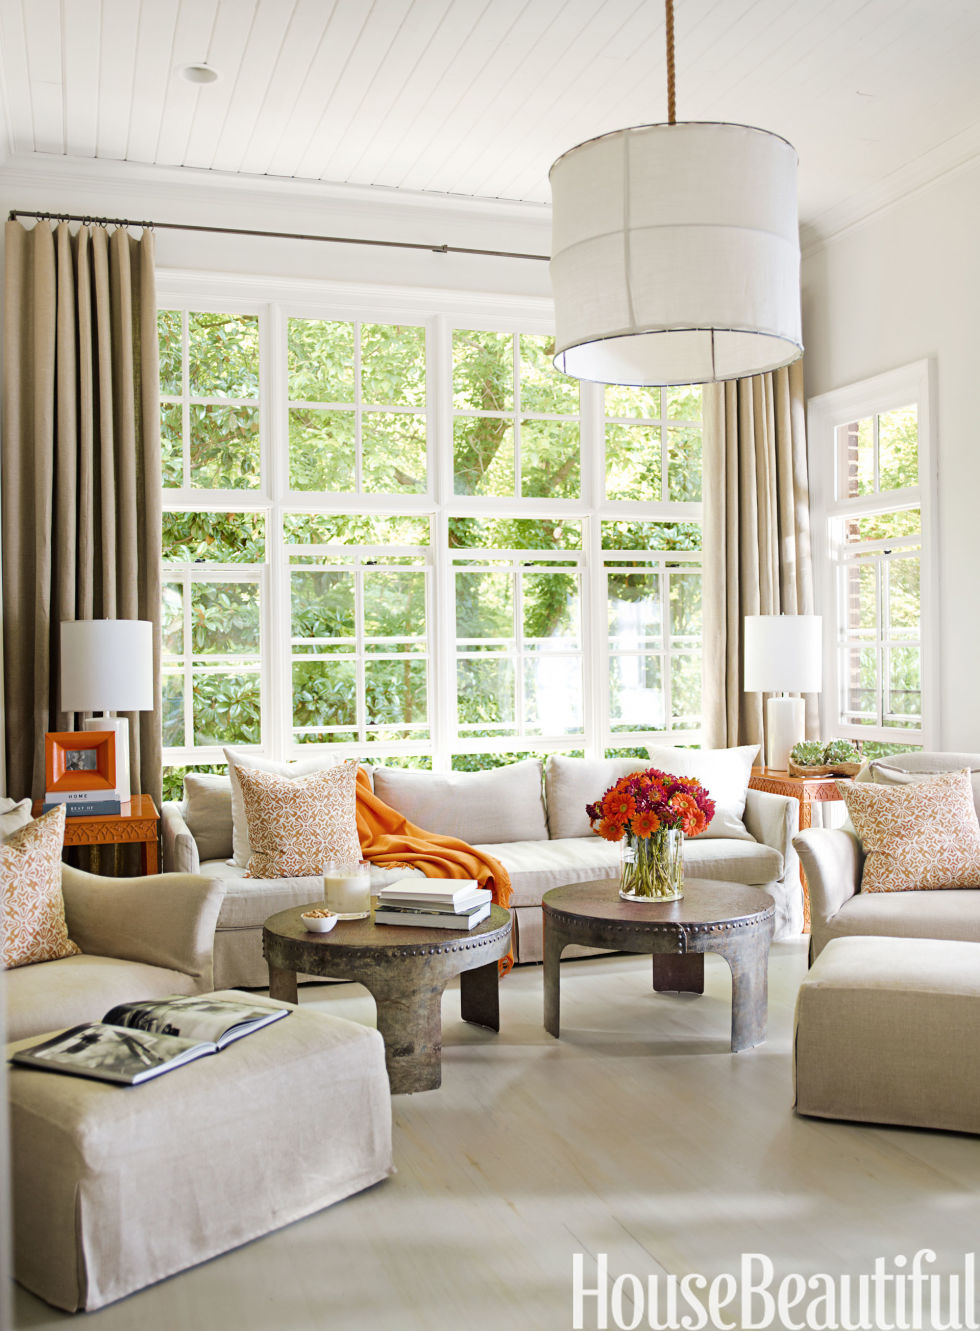 Living Room Decor Orange decorating with orange accents - orange home decor